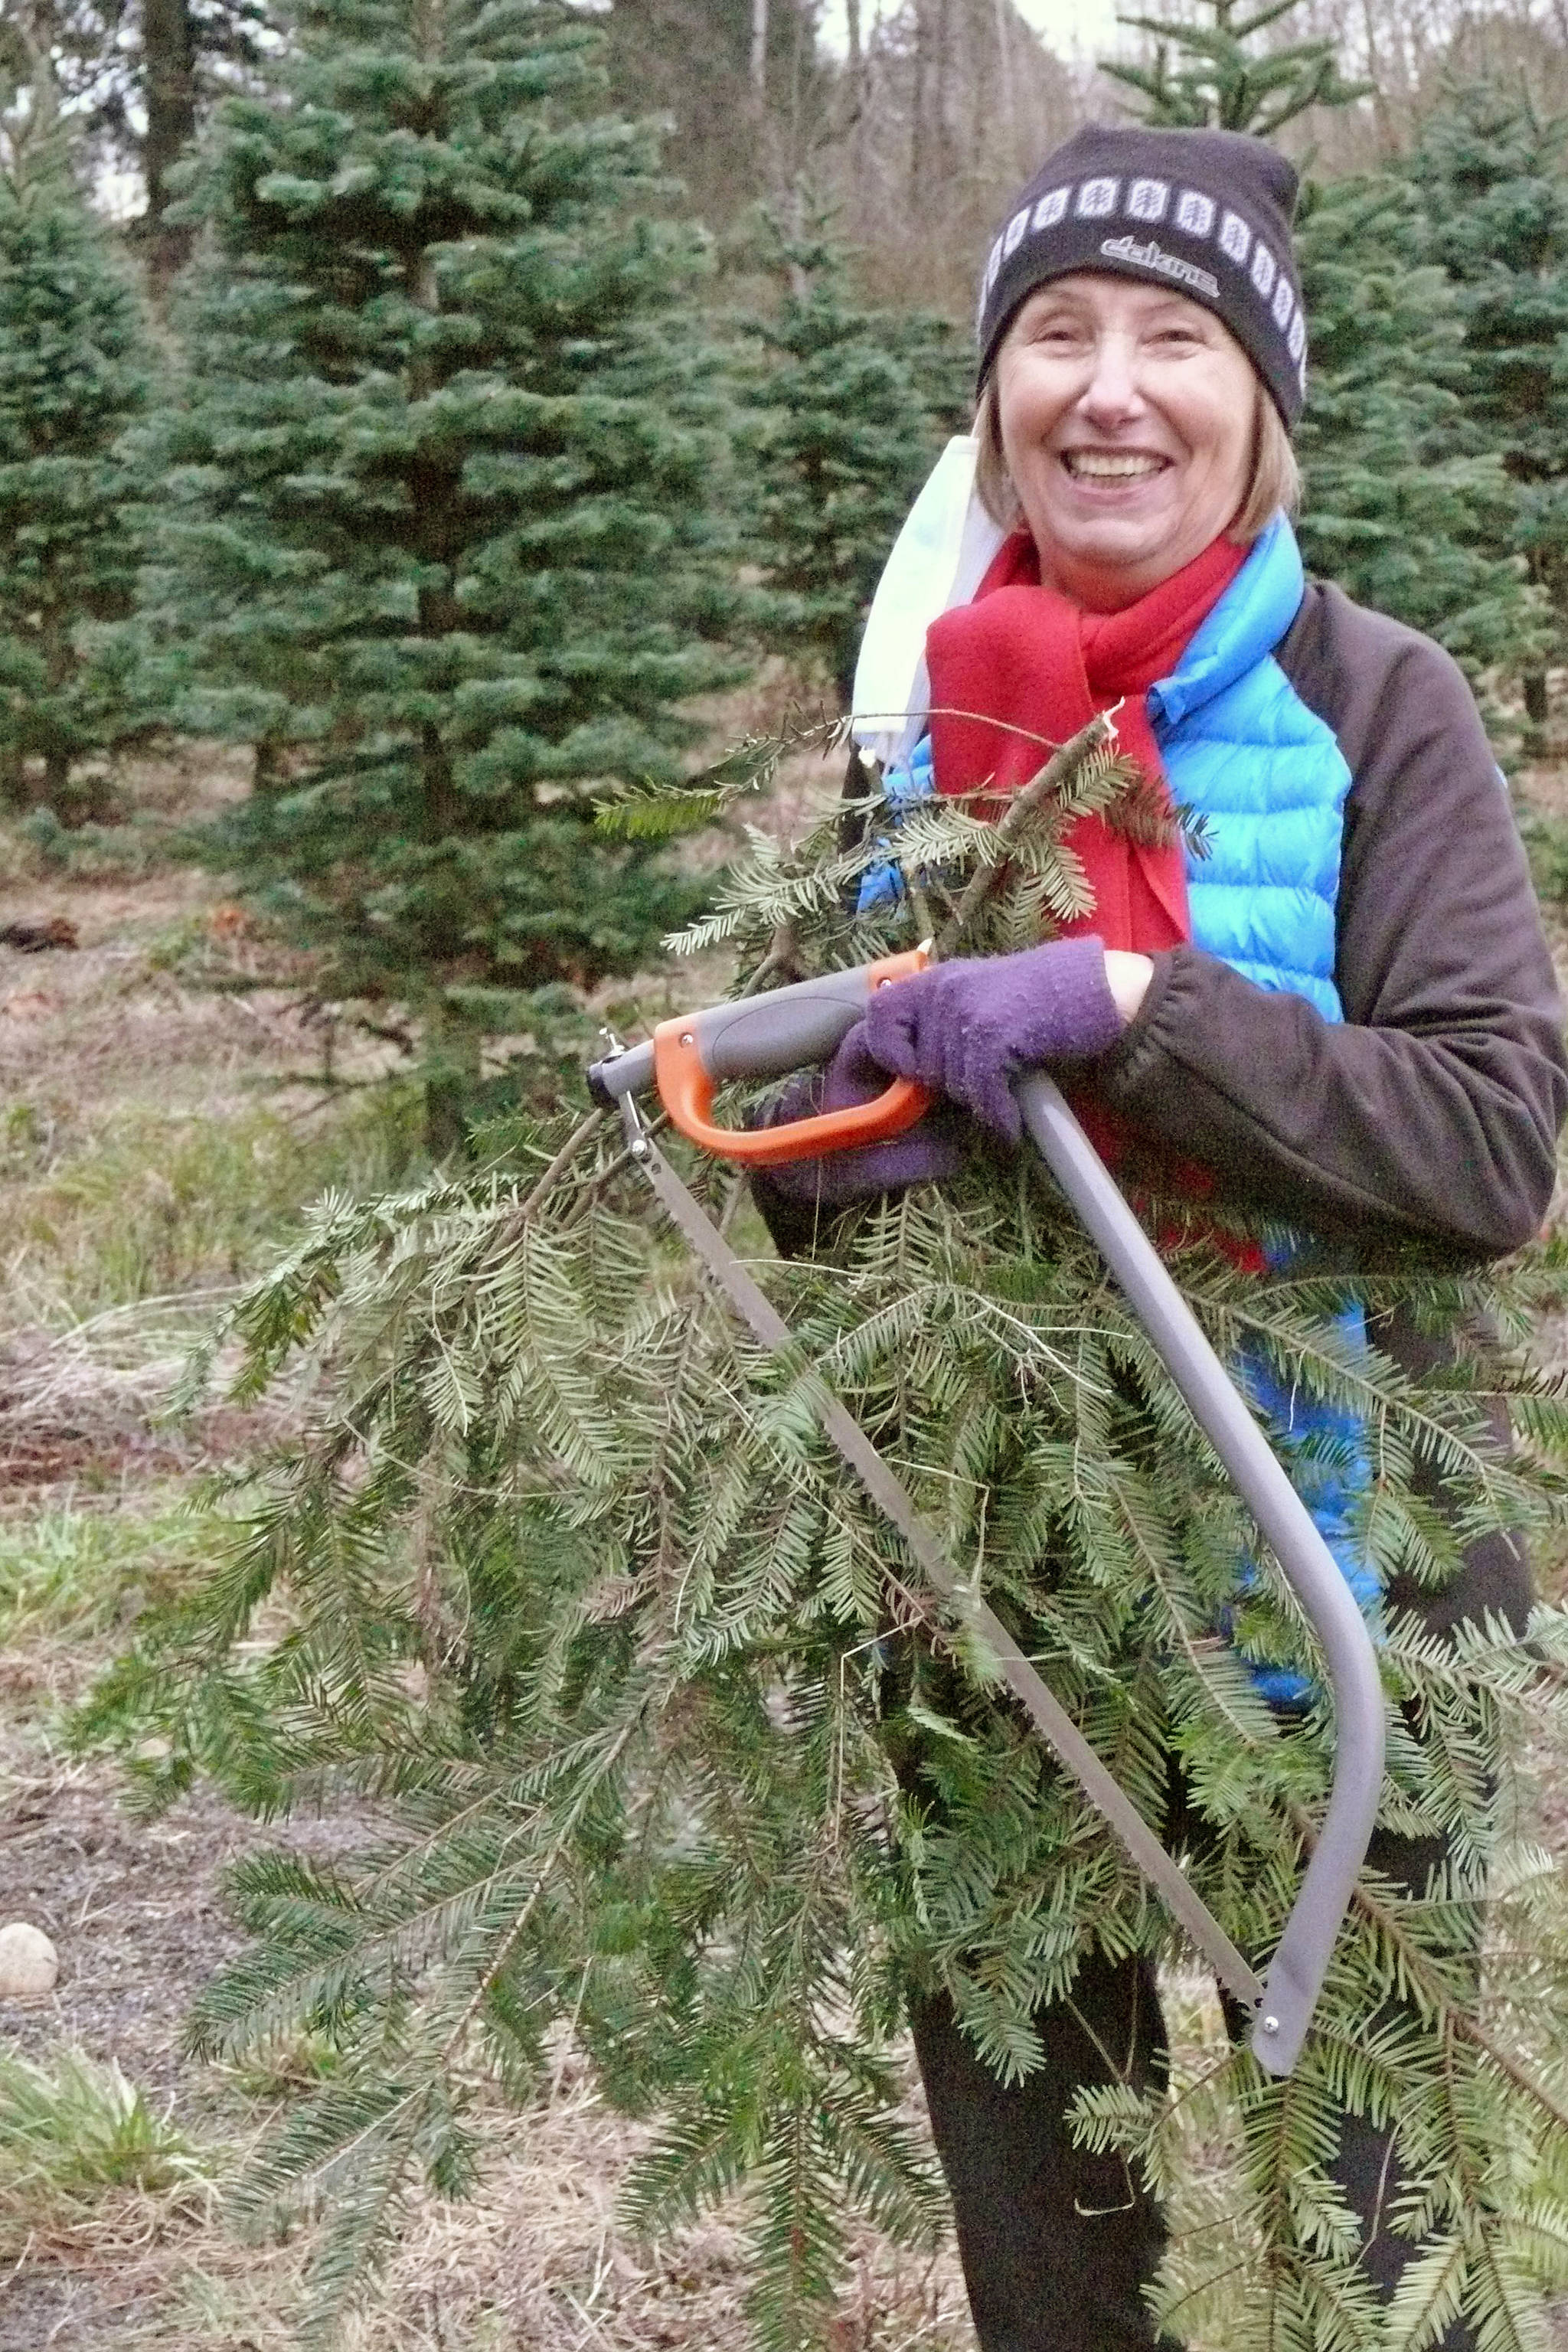 Traude Holmes, a grandmother of three, came all the way from North Vancouver to help her family pick and cut a Christmas Tree at the Tannenbaum Tree Farm at 5398 252 St in Aldergrove on Sunday, Nov. 29, 2020 (Dan Ferguson/Langley Advance Times)